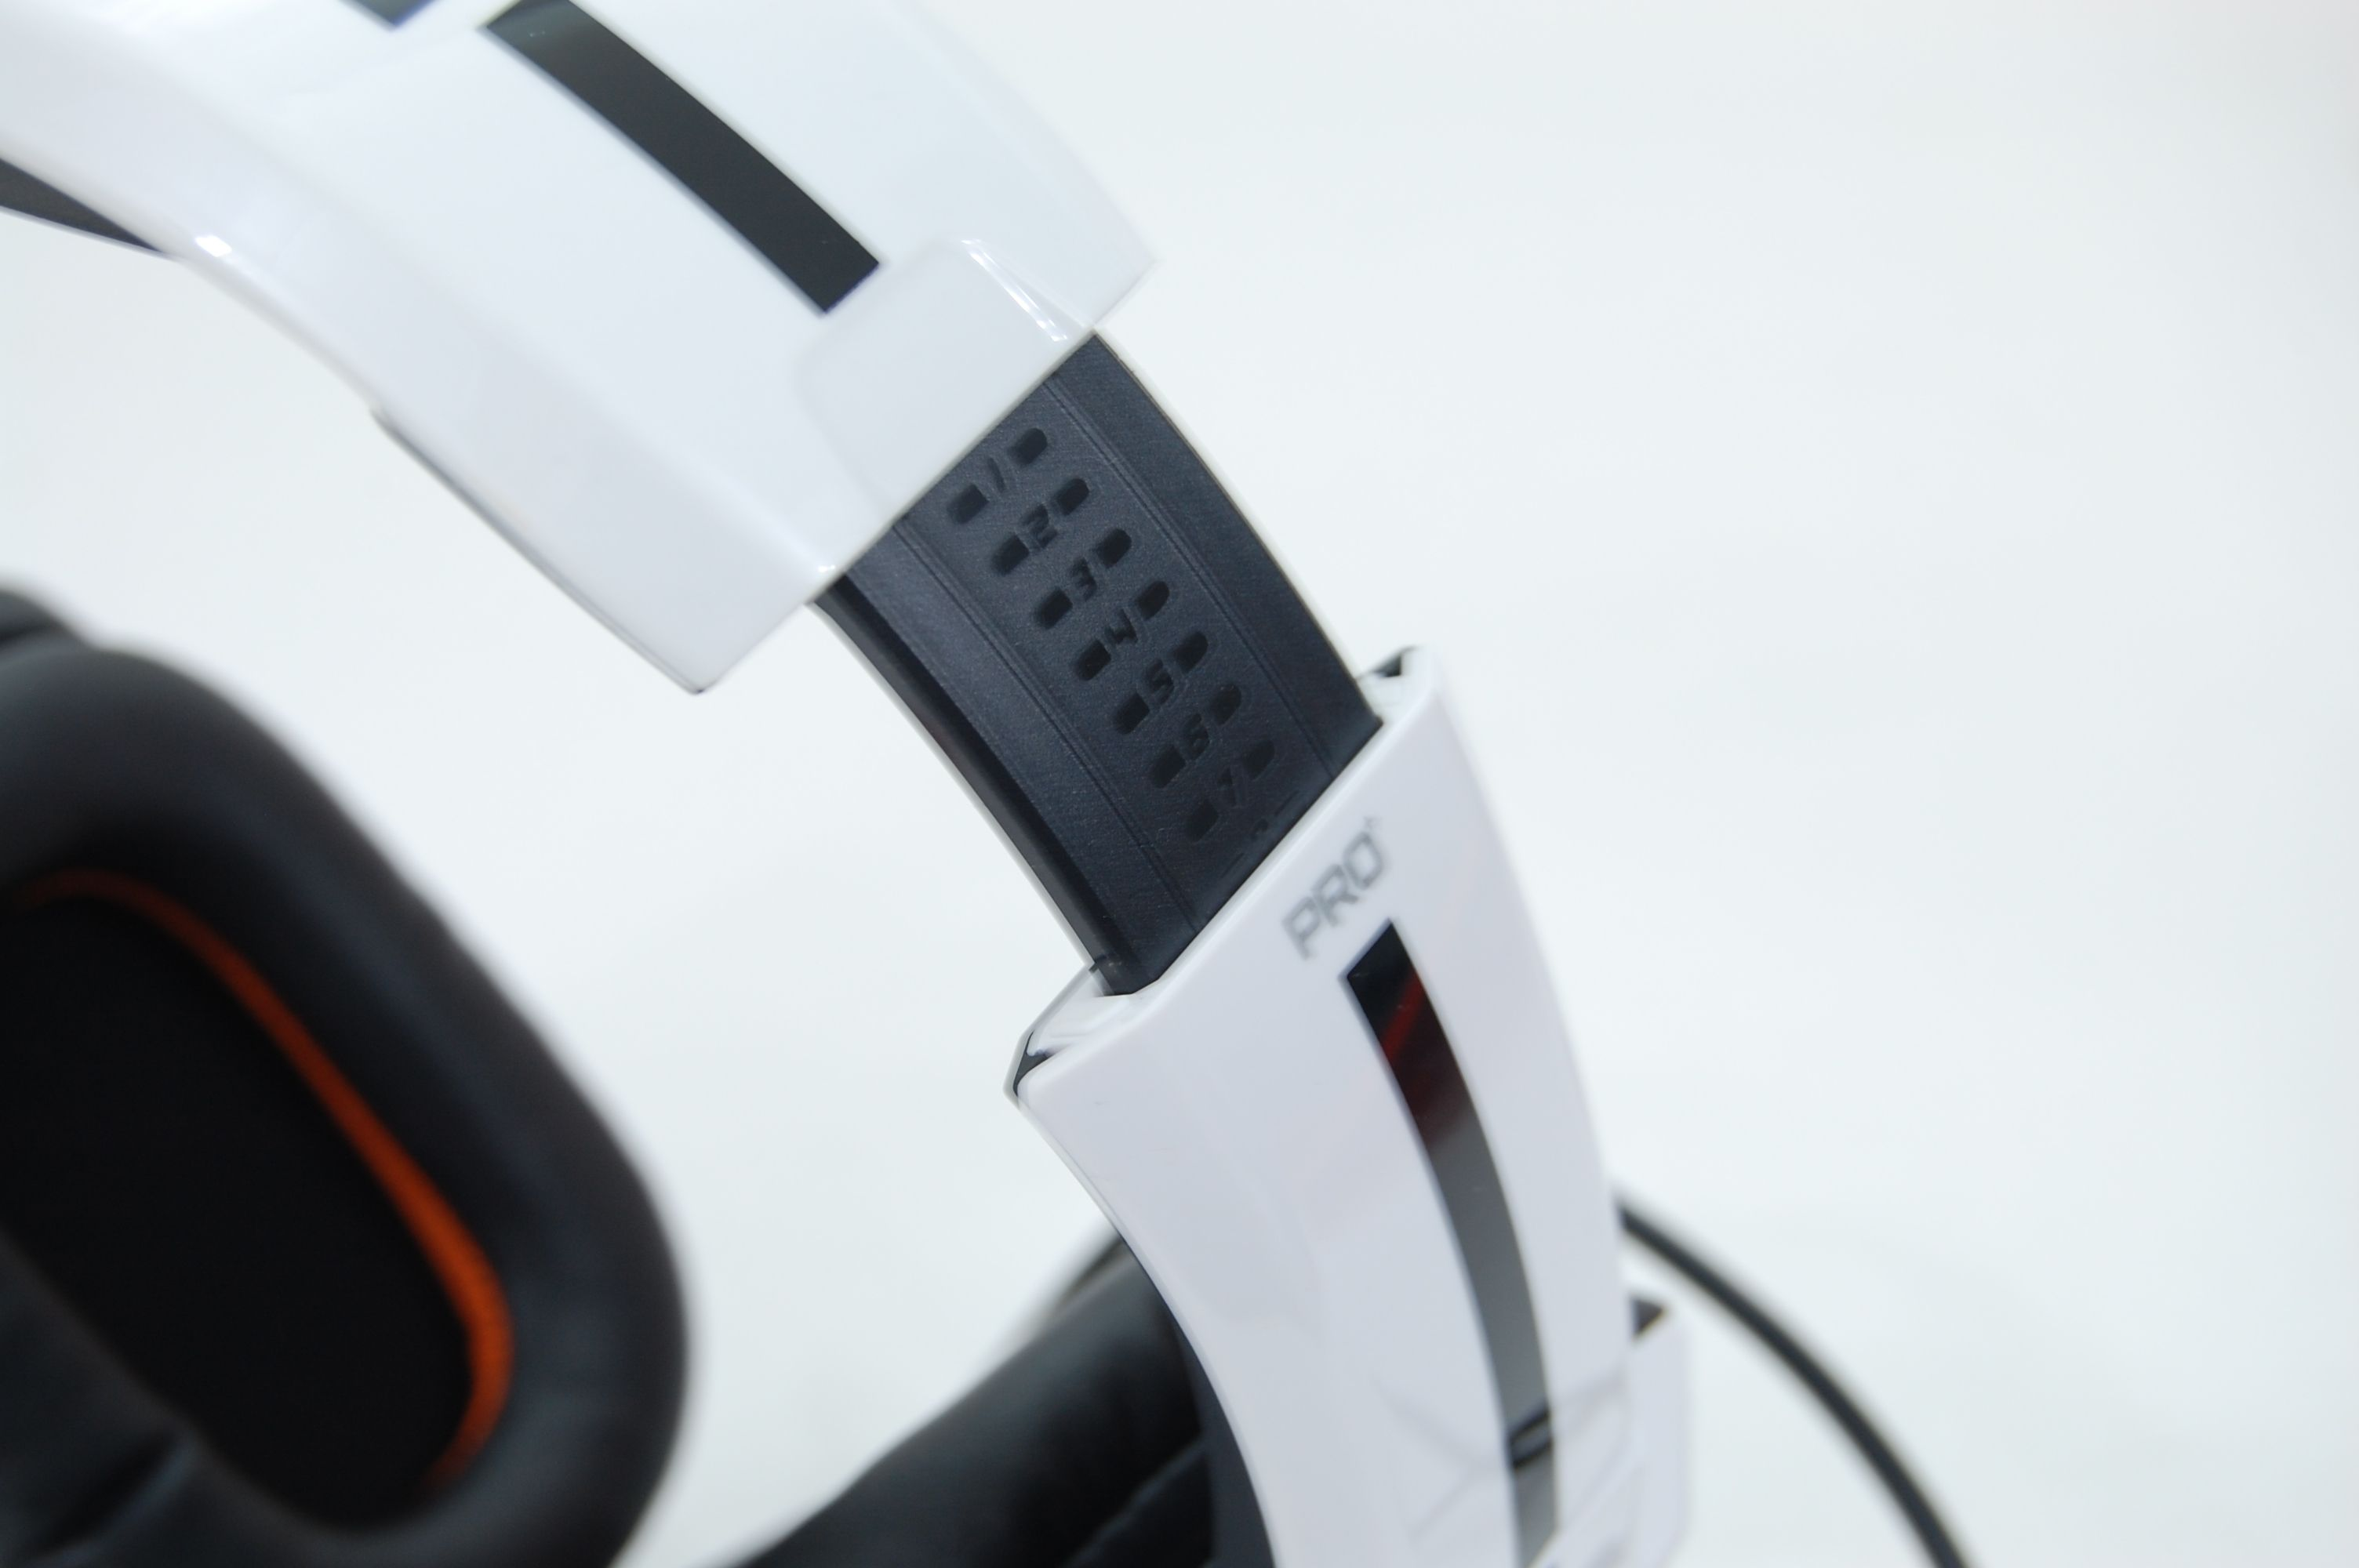 Tritton by MadCatz Pro+ 5.1 Surround Gaming Headset Review - Adjustable Headband